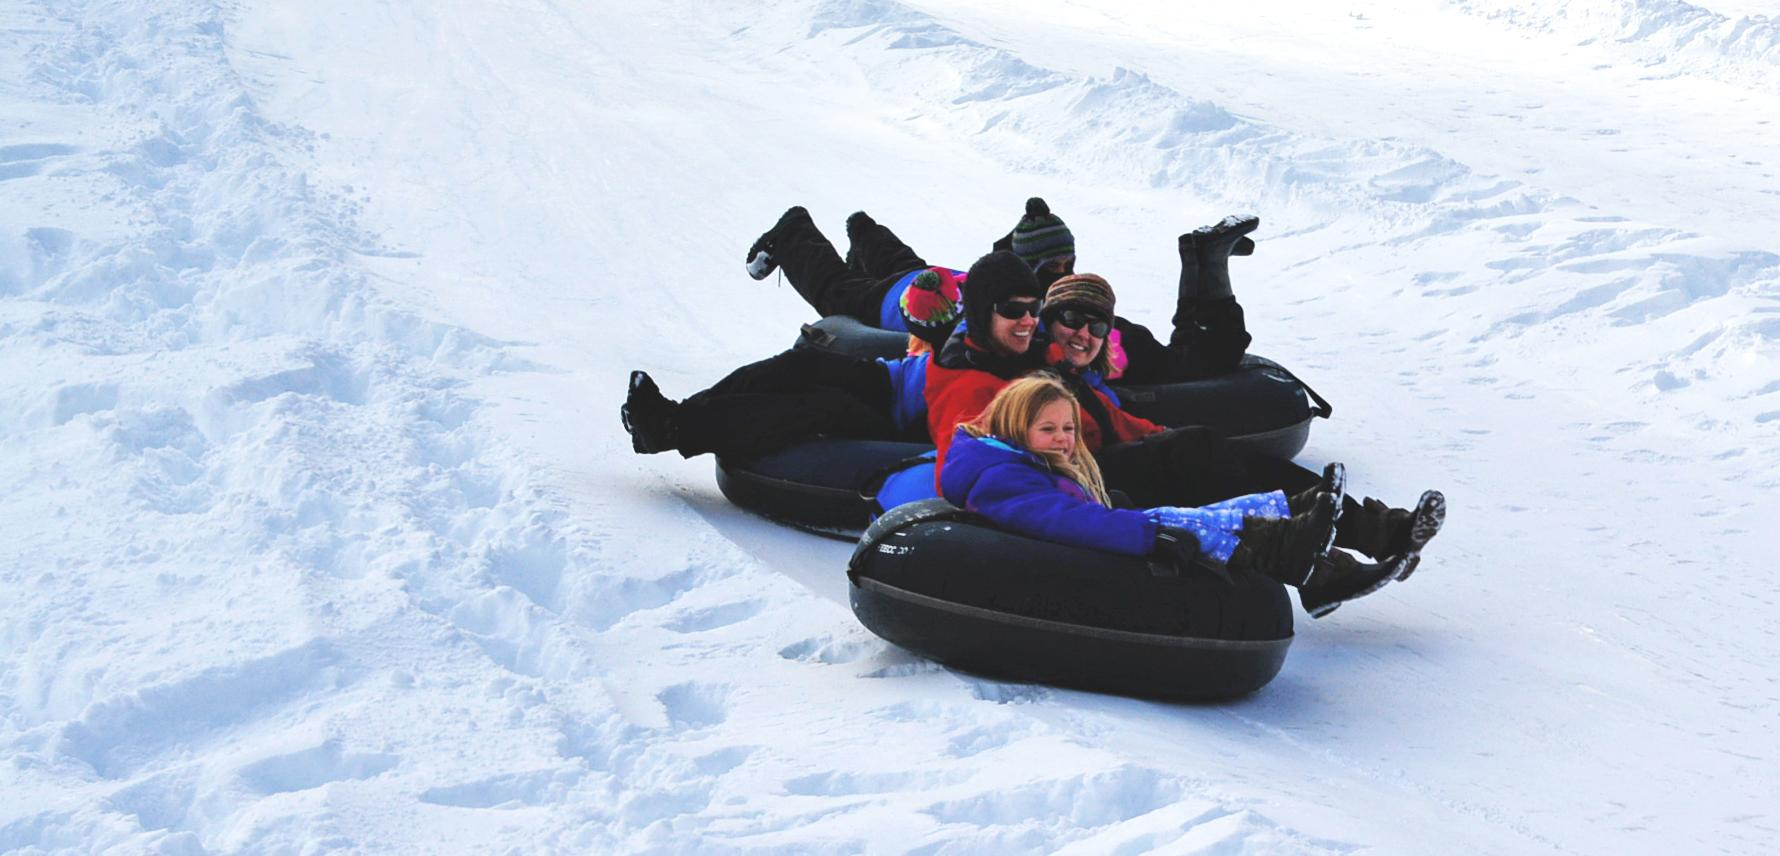 Downhill inner tubing at Suncadia Resort is fun for all ages.{&amp;nbsp;}<p></p>